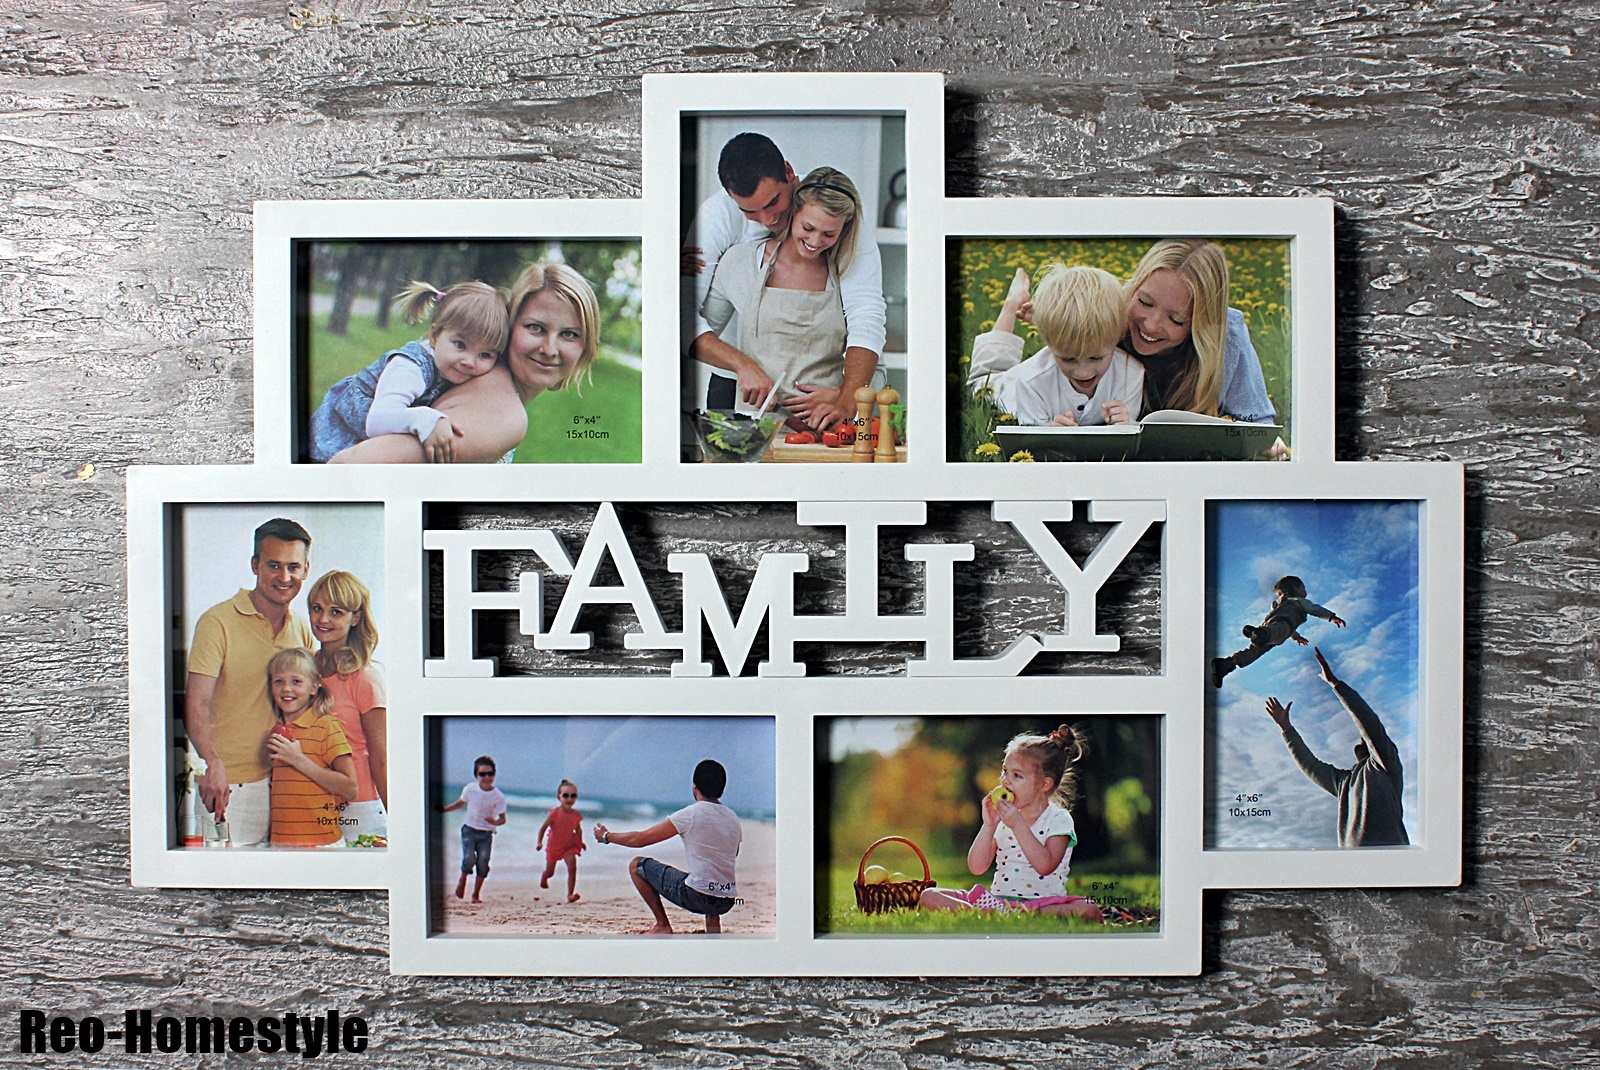 bilderrahmen fotorahmen collage family familie 7 fotos 10x15 cm wei geschenk ebay. Black Bedroom Furniture Sets. Home Design Ideas